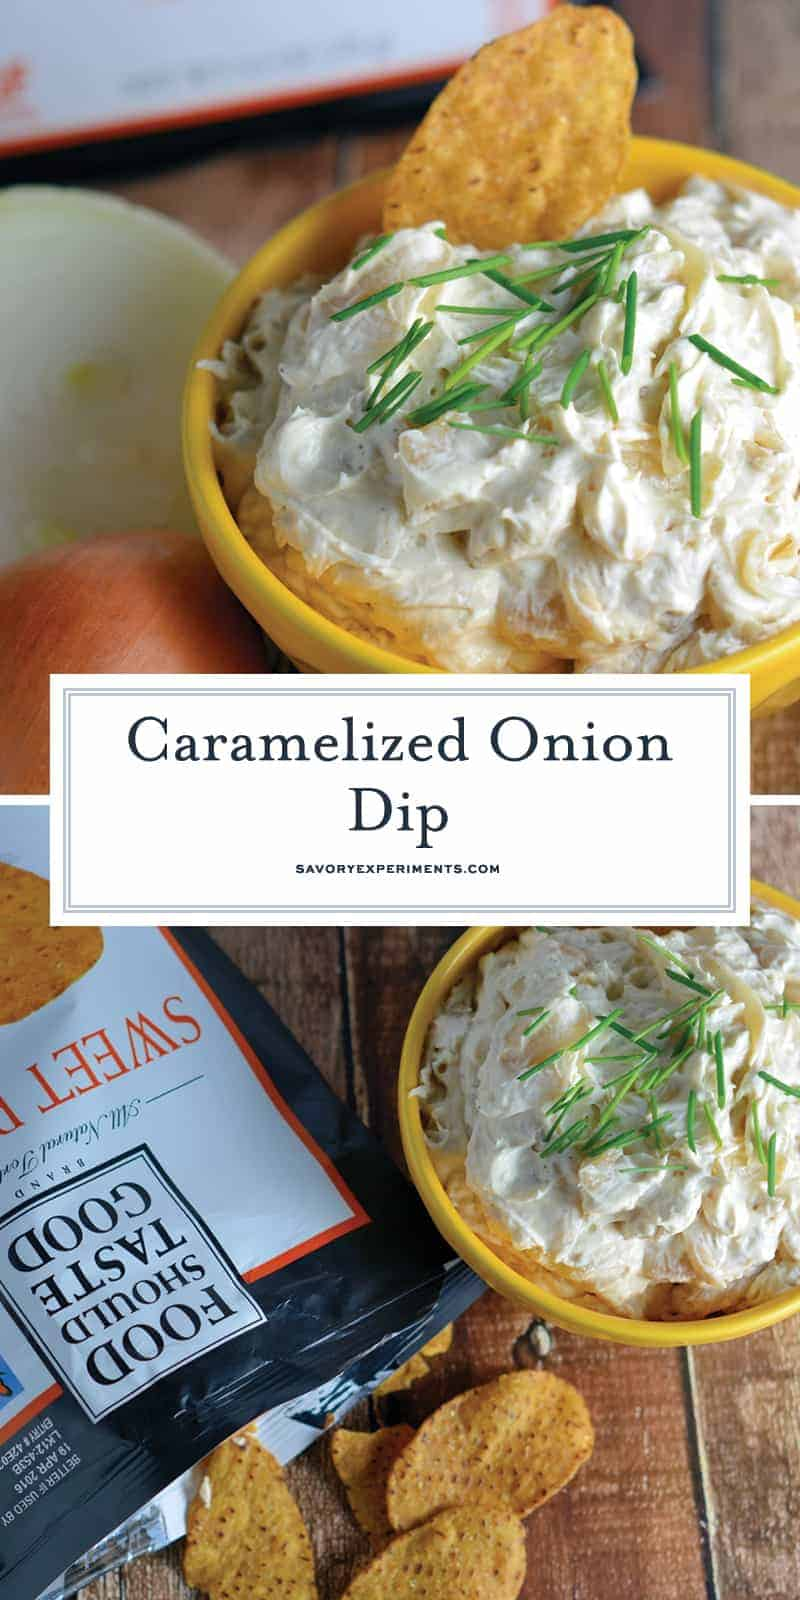 This is the best darn Caramelized Onion and Garlic Dip Recipe out there! Pair with any type of chip or vegetable for the perfect party appetizer. #diprecipes #caramelizedoniondip www.savoryexperiments.com